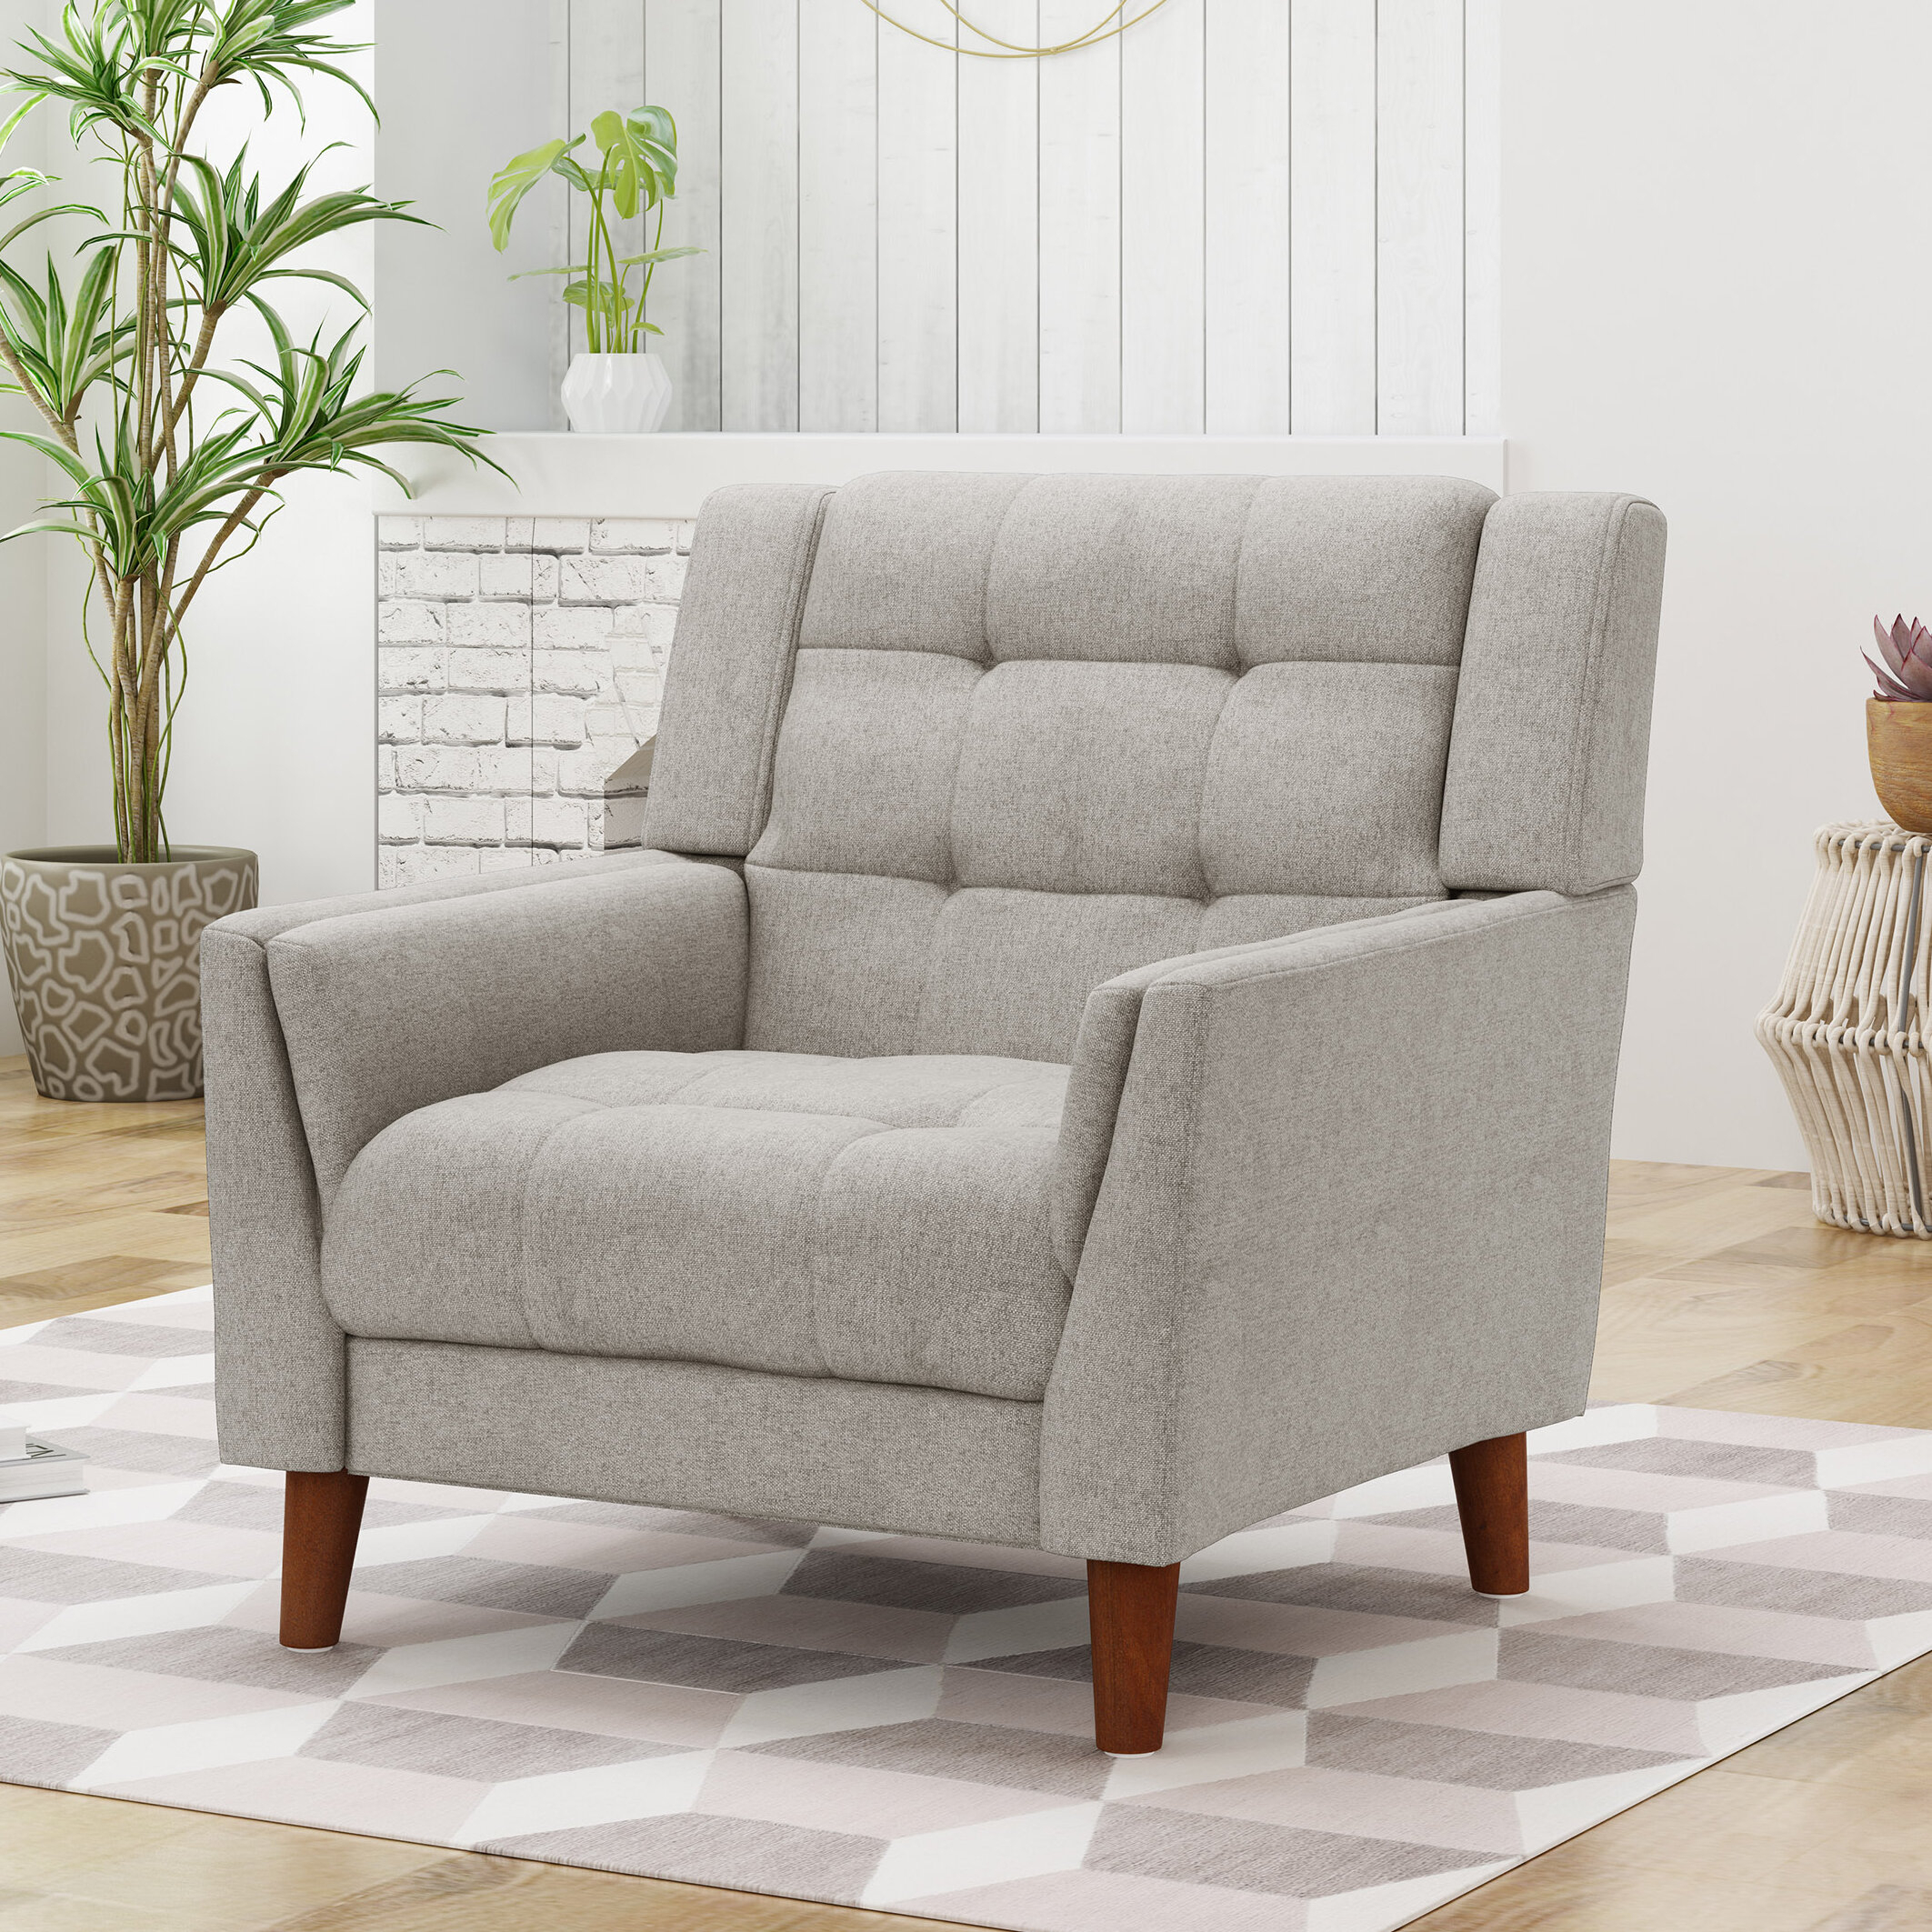 Accent Chairs | Up To 60% Off Through 01/05 With Regard To Bernardston Armchairs (View 15 of 15)